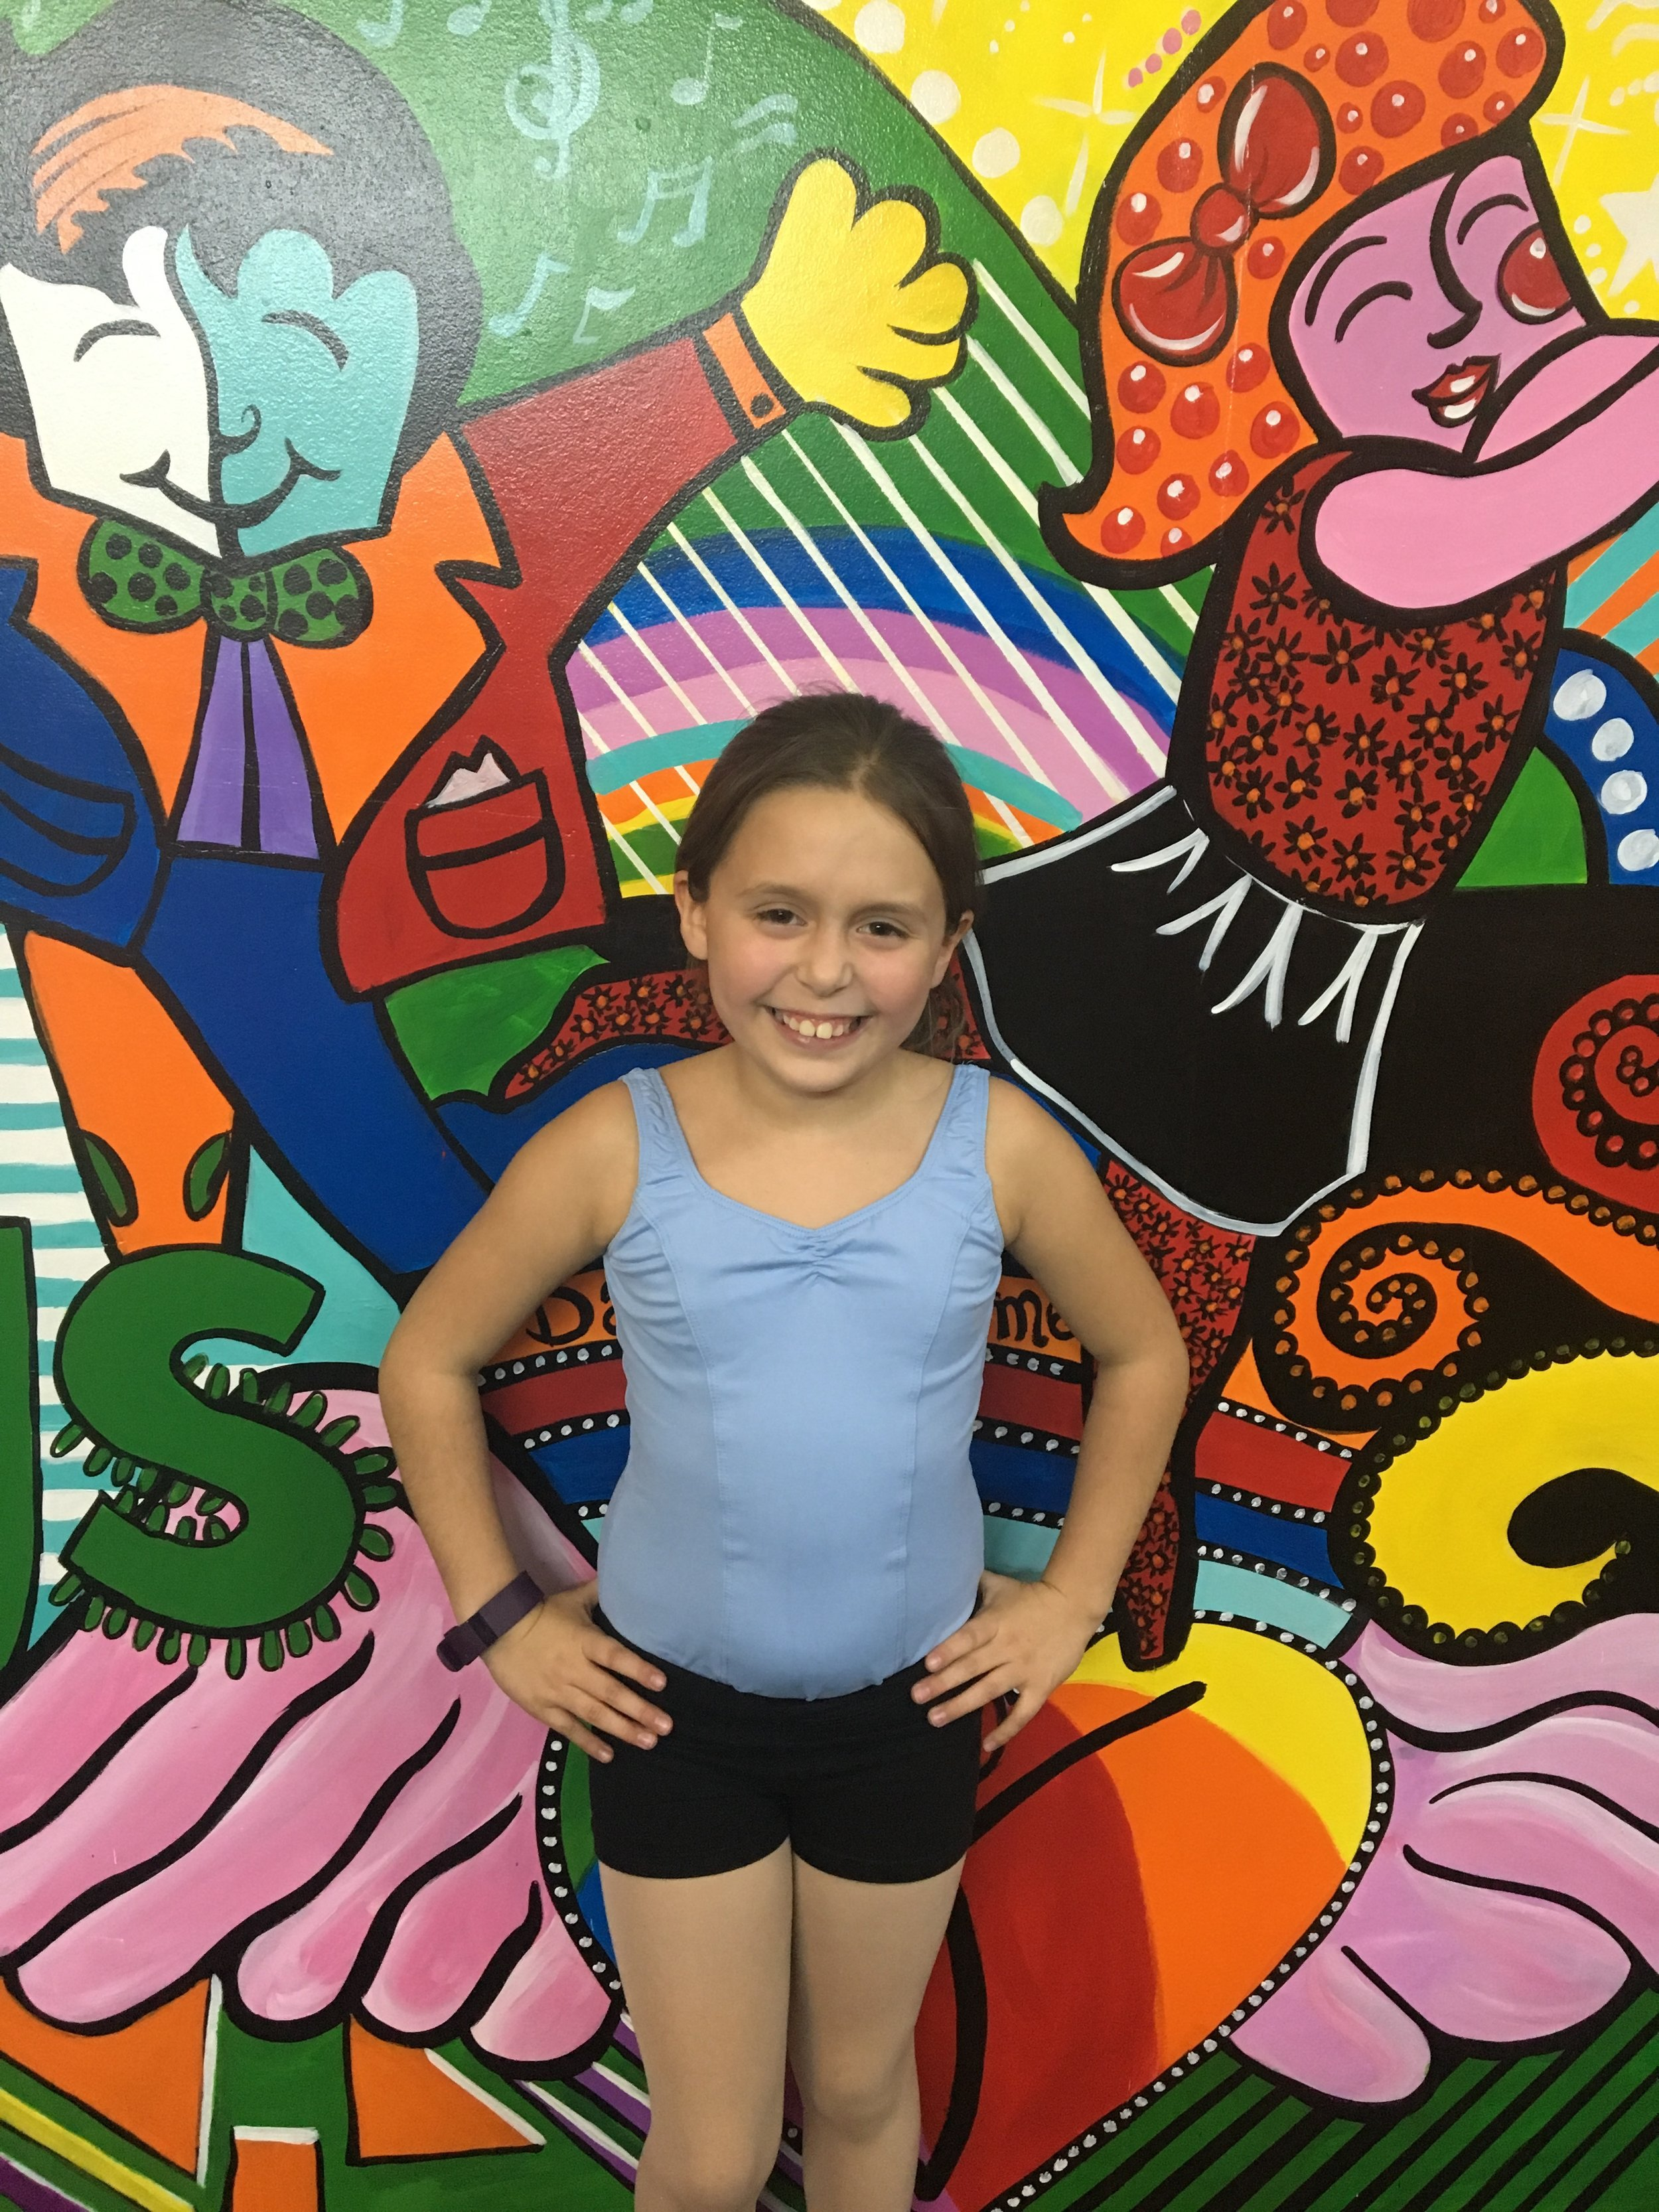 5 Year Award Winner: Olivia Segura   Olivia Segura loves to dance tap because it's fun. Her favorite subject in school is science and she wants to be a doctor when she grow up. She loves dancing at Forevermore because the teachers are amazing. Her role model is her mom and a fun fact about Olivia is she can do a double flip in the water.